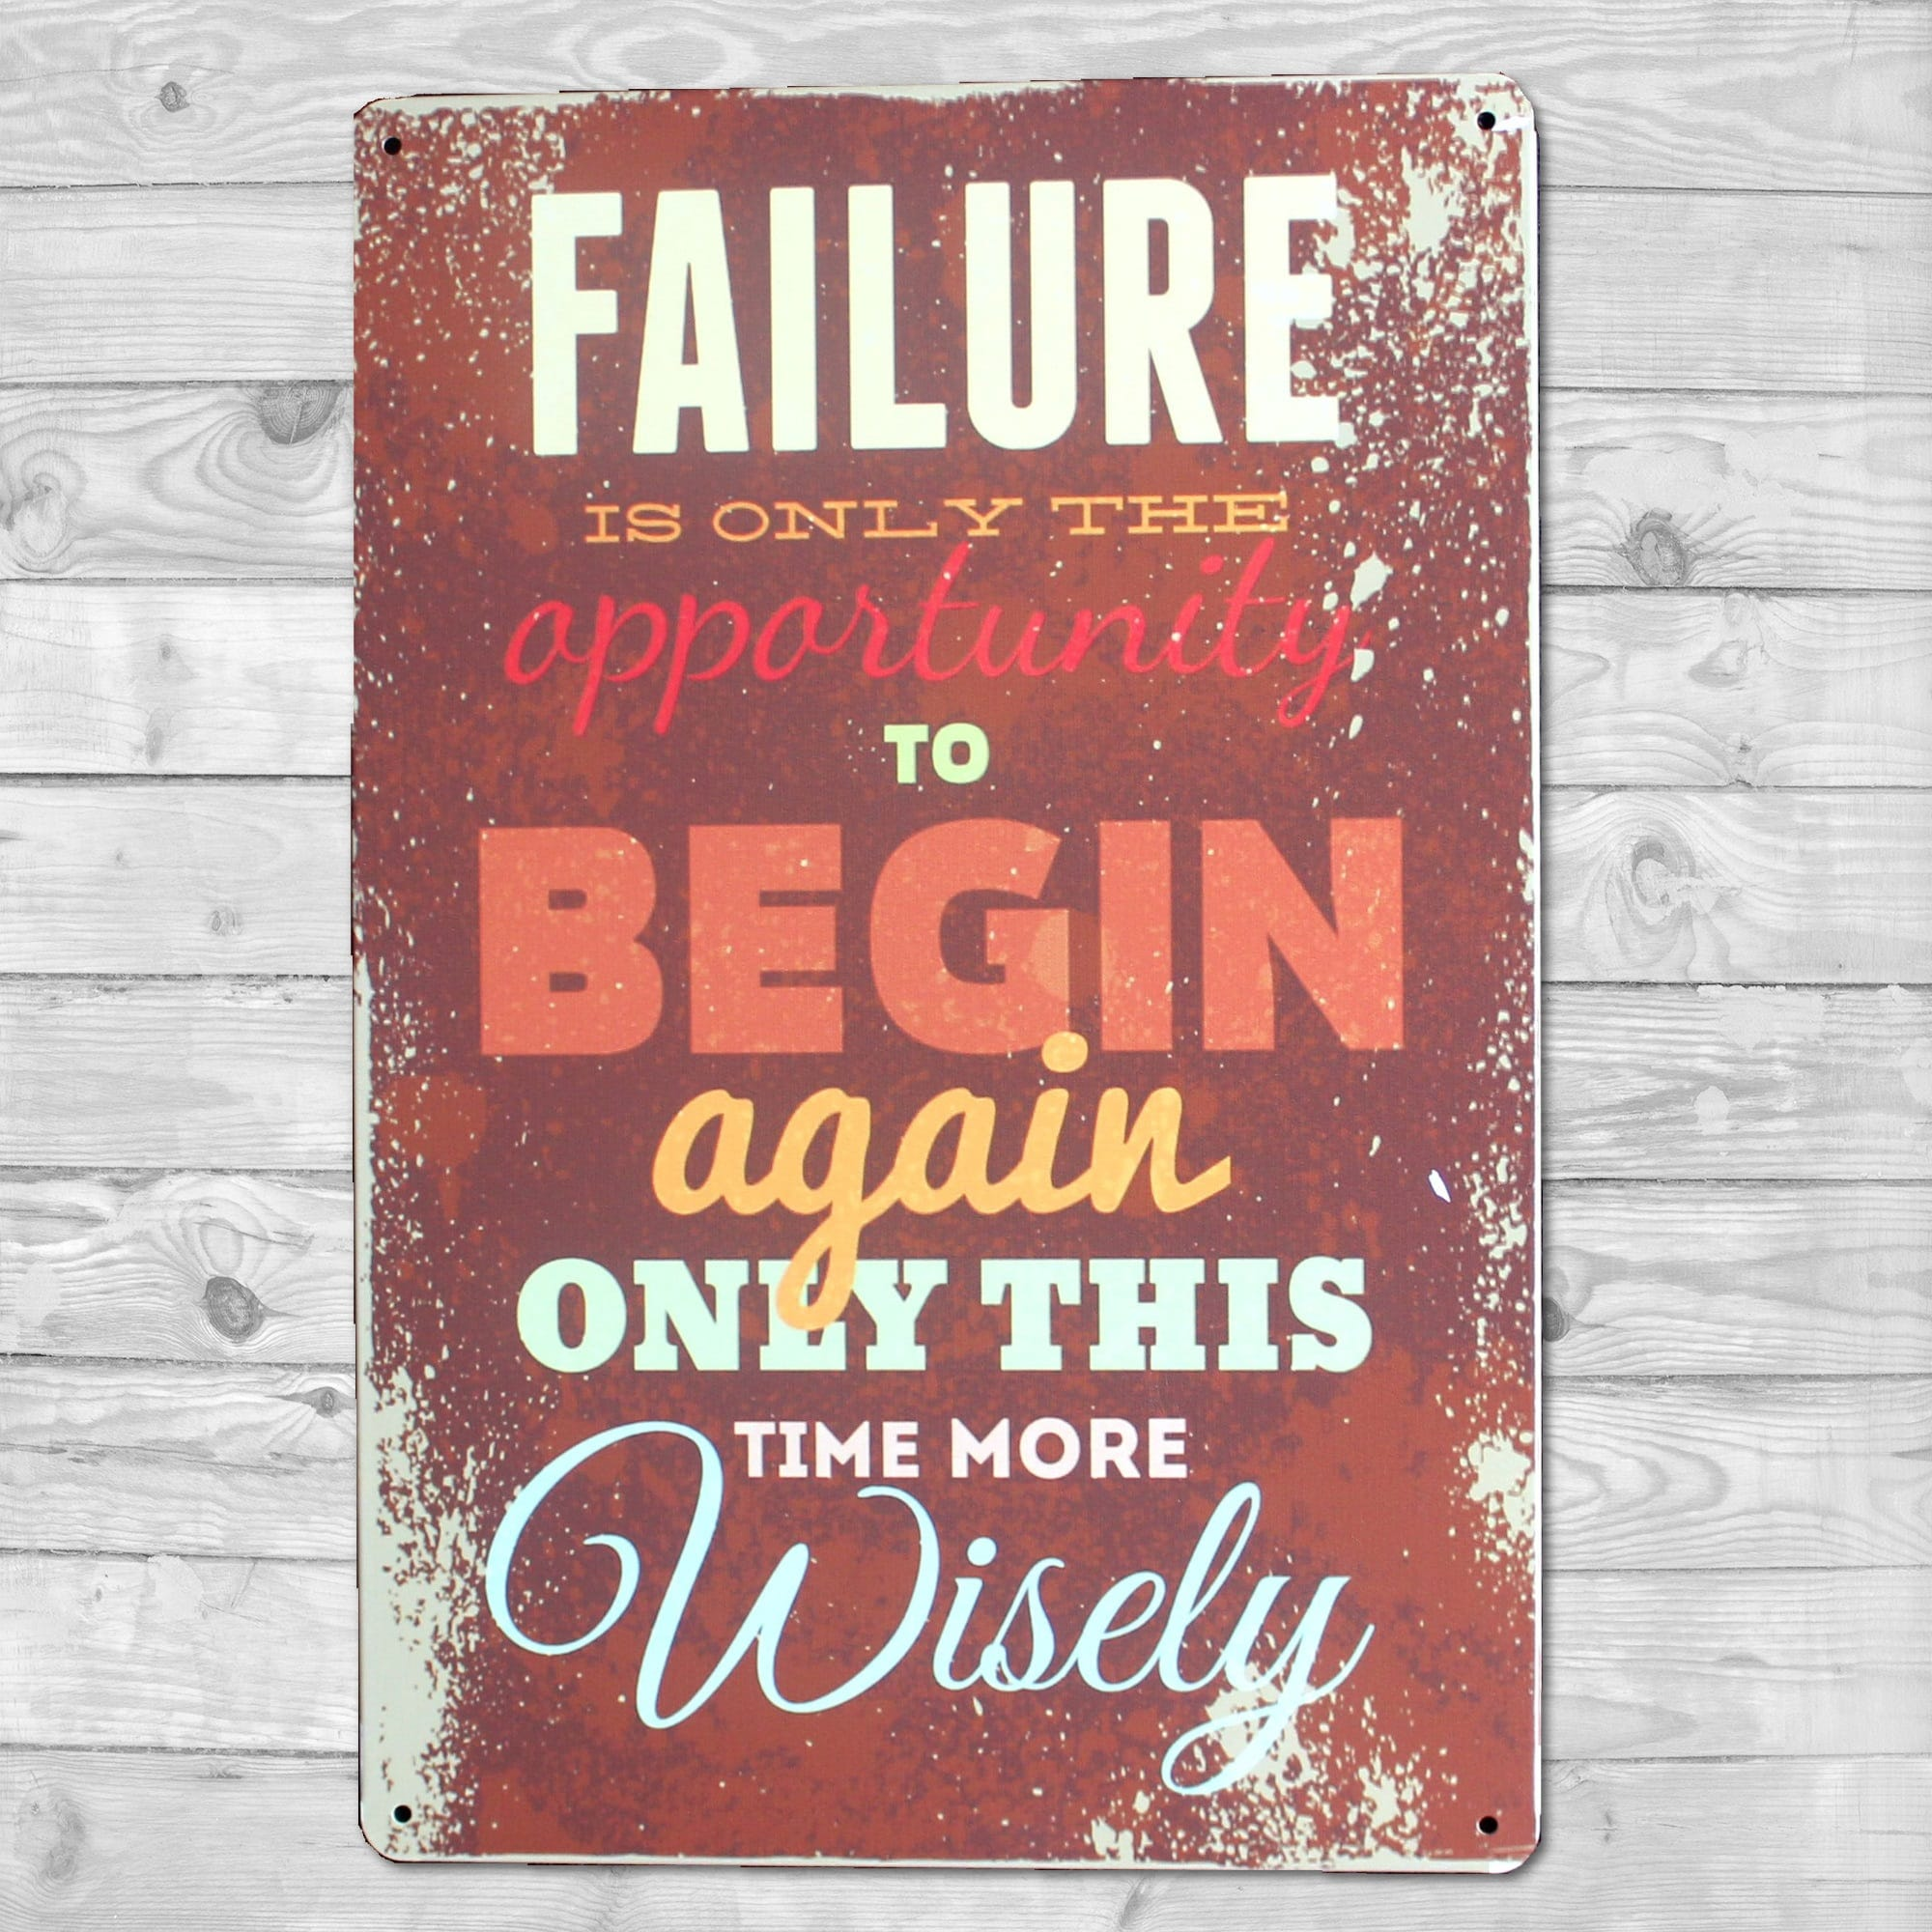 failure is an opportunity to begin again essay How to set up thesis theme essay on failure is an opportunity to begin again article essays: how to set up thesis theme with free revisions included.